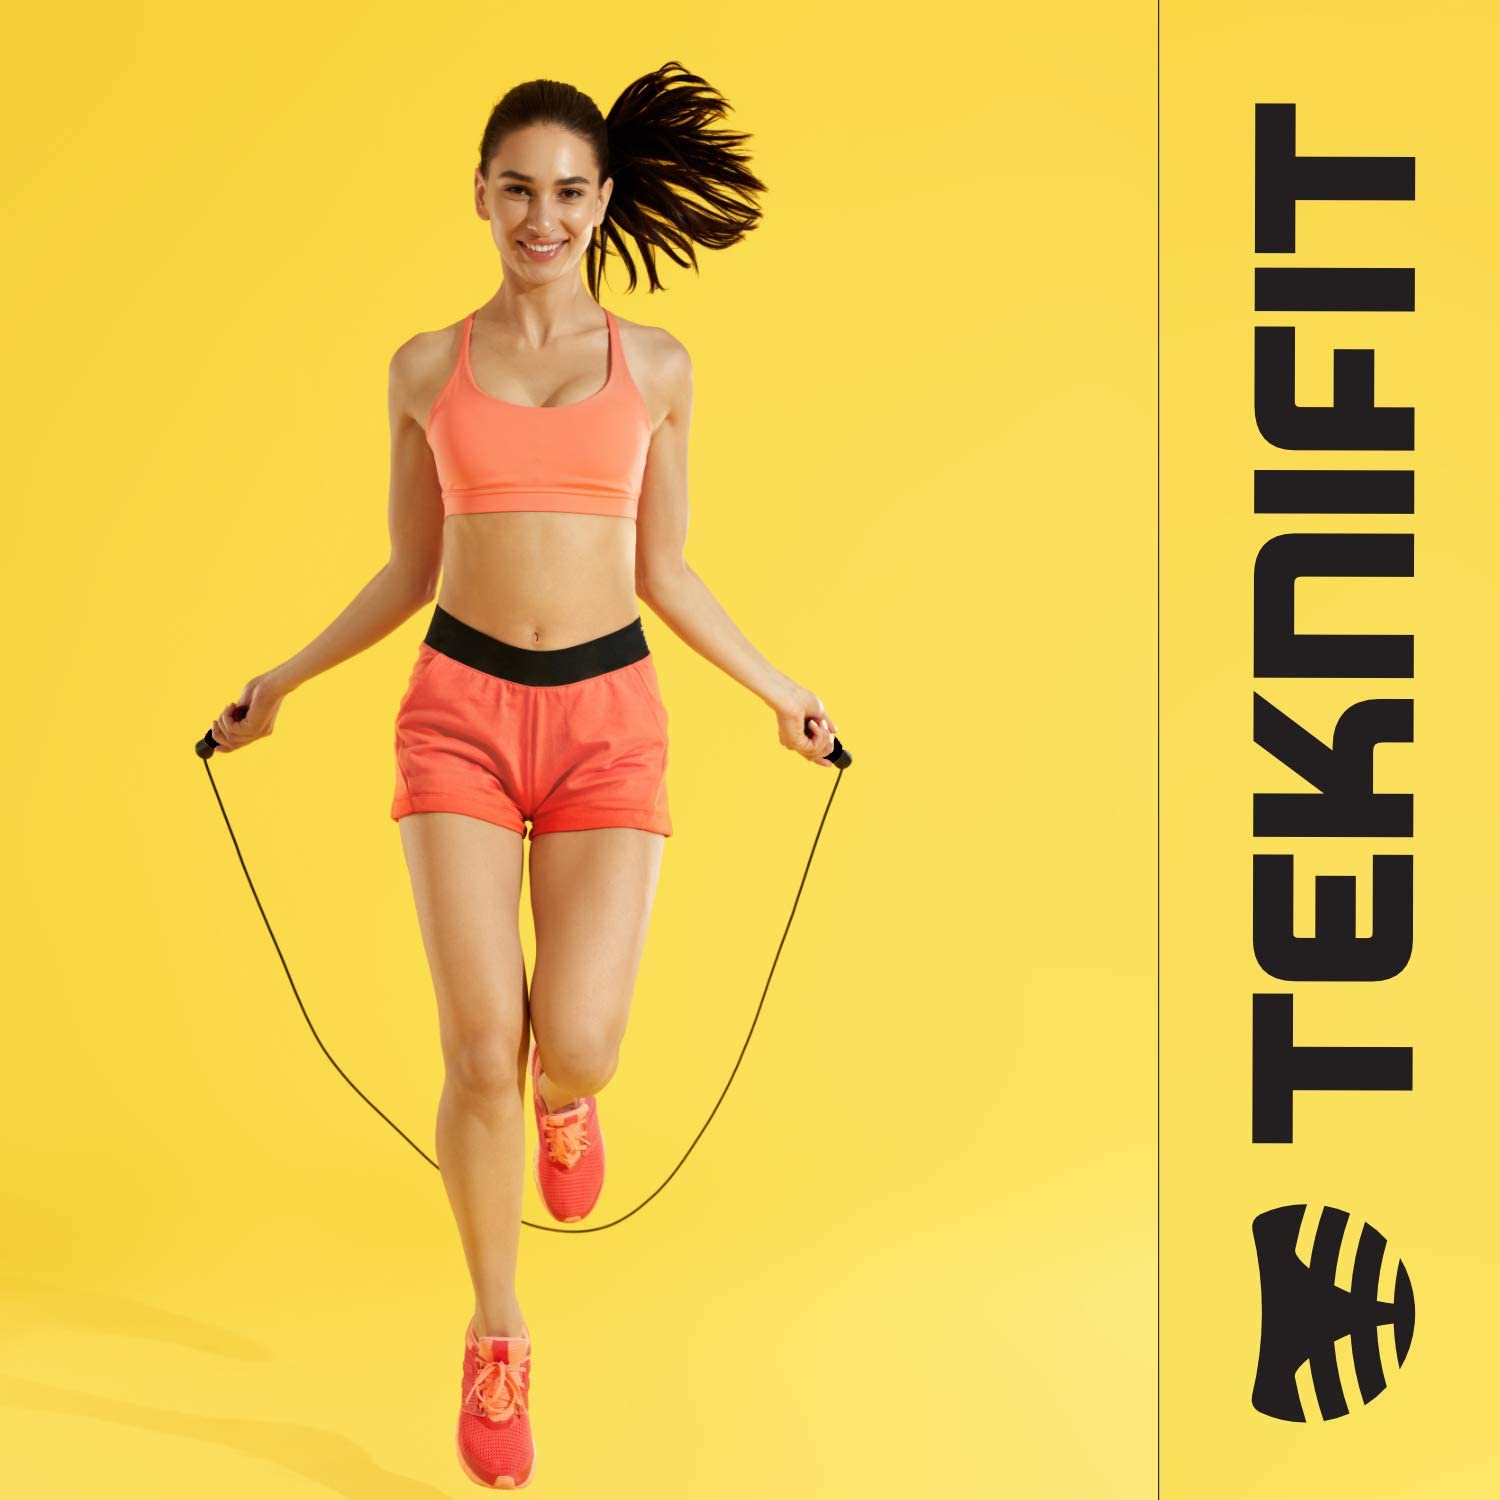 Teknifit Skipping Rope Fully Adjustable High Speed Jump Rope for Ultimate Fat Burning Cardio